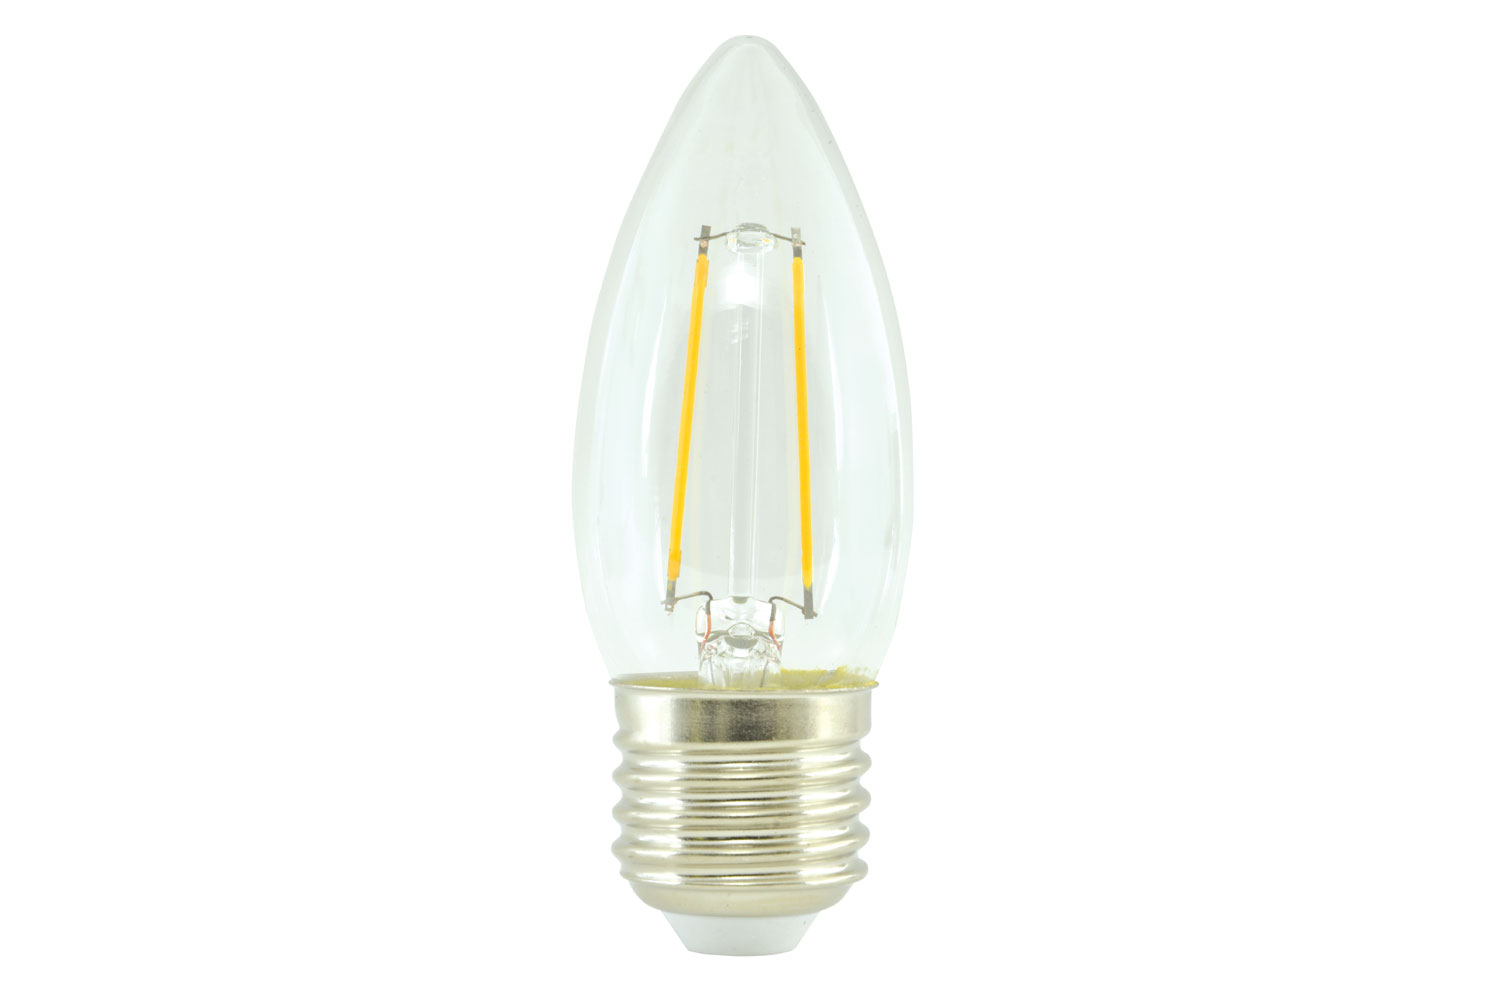 lyyt Candle Filament Lamp 2W LED E27 WW